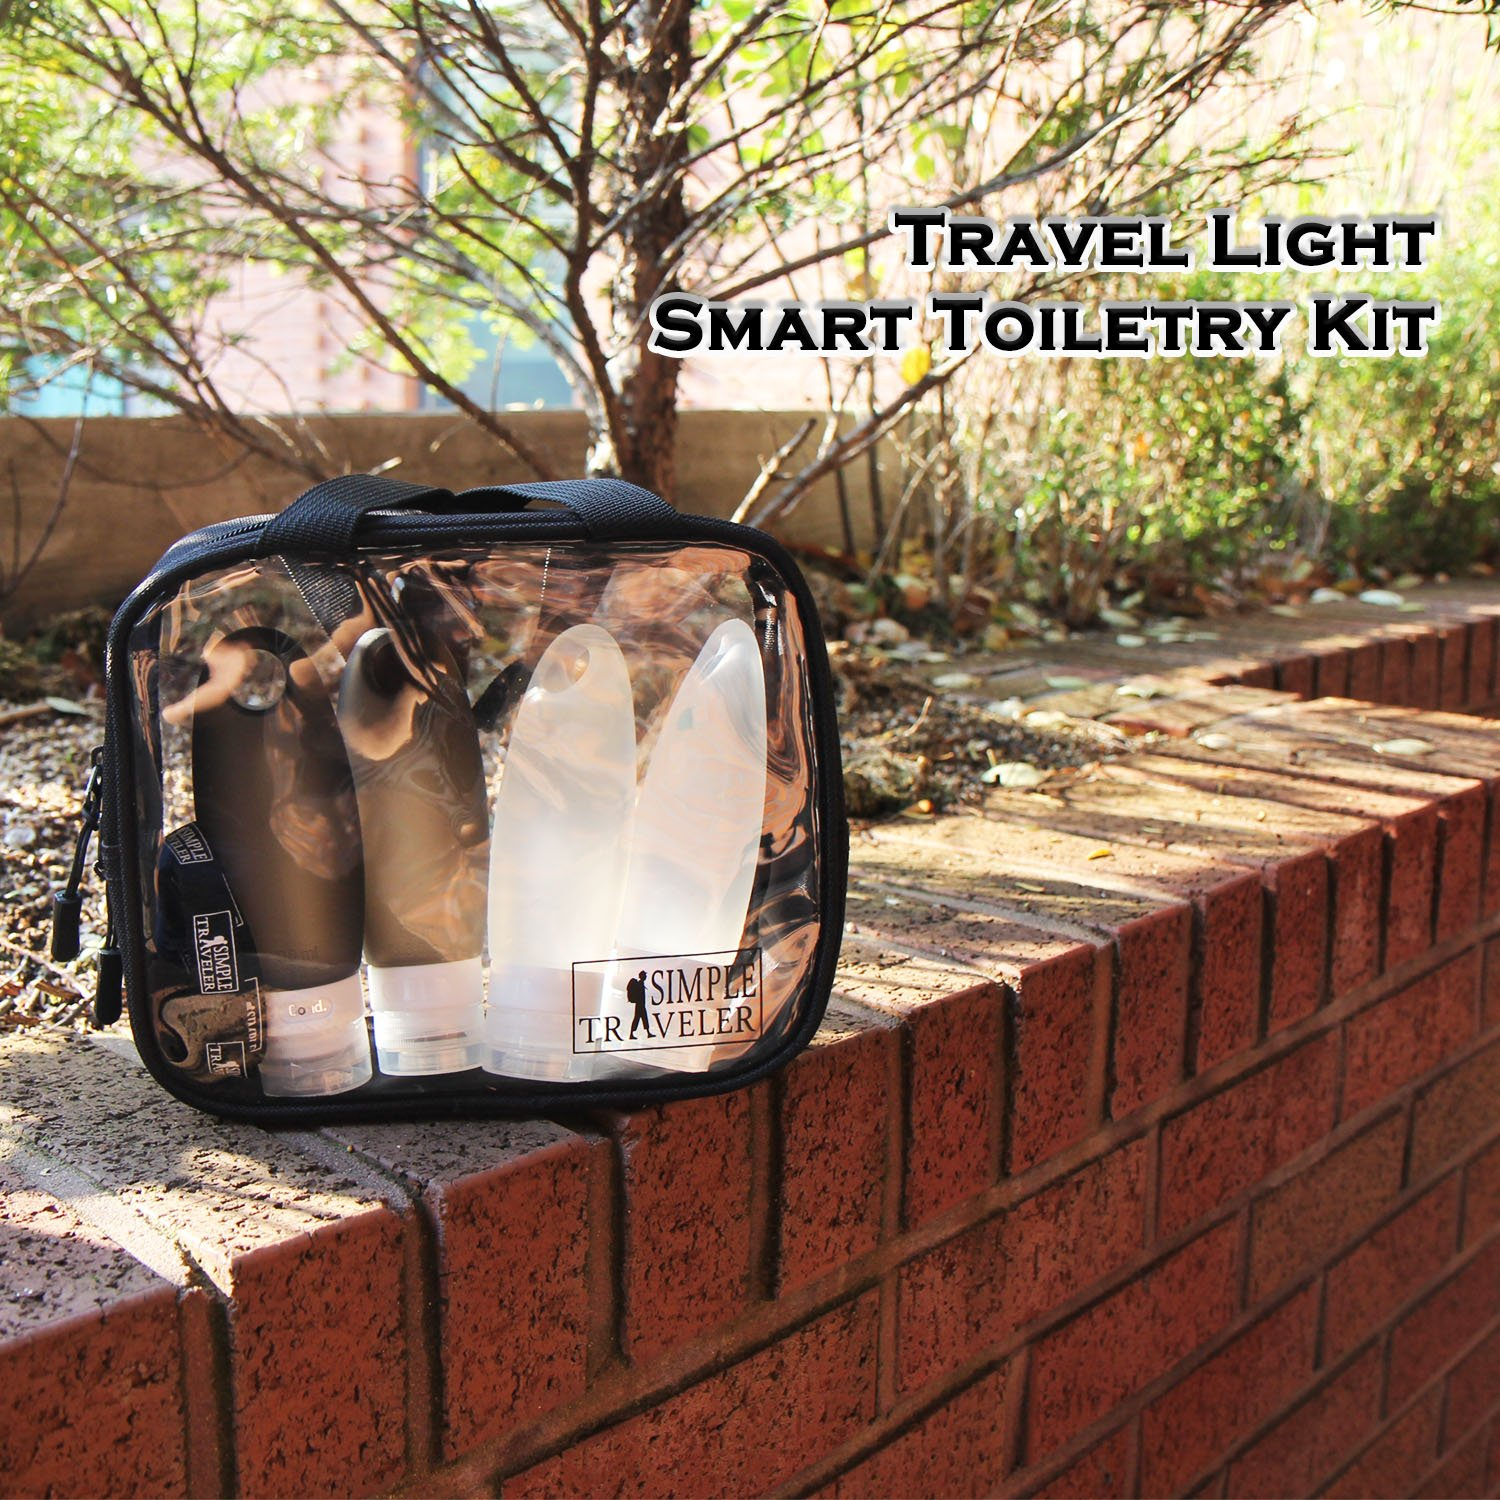 TSA approved Toiletry Bag Squeezable Silicone Travel Bottles Set | Clear Leak Proof Refillable Containers for Liquids (BPA Free, 3.3 OZ) | Toothbrush covers with Hanging Strap | Quart Sized Air Carry- by Simpletraveler (Image #2)